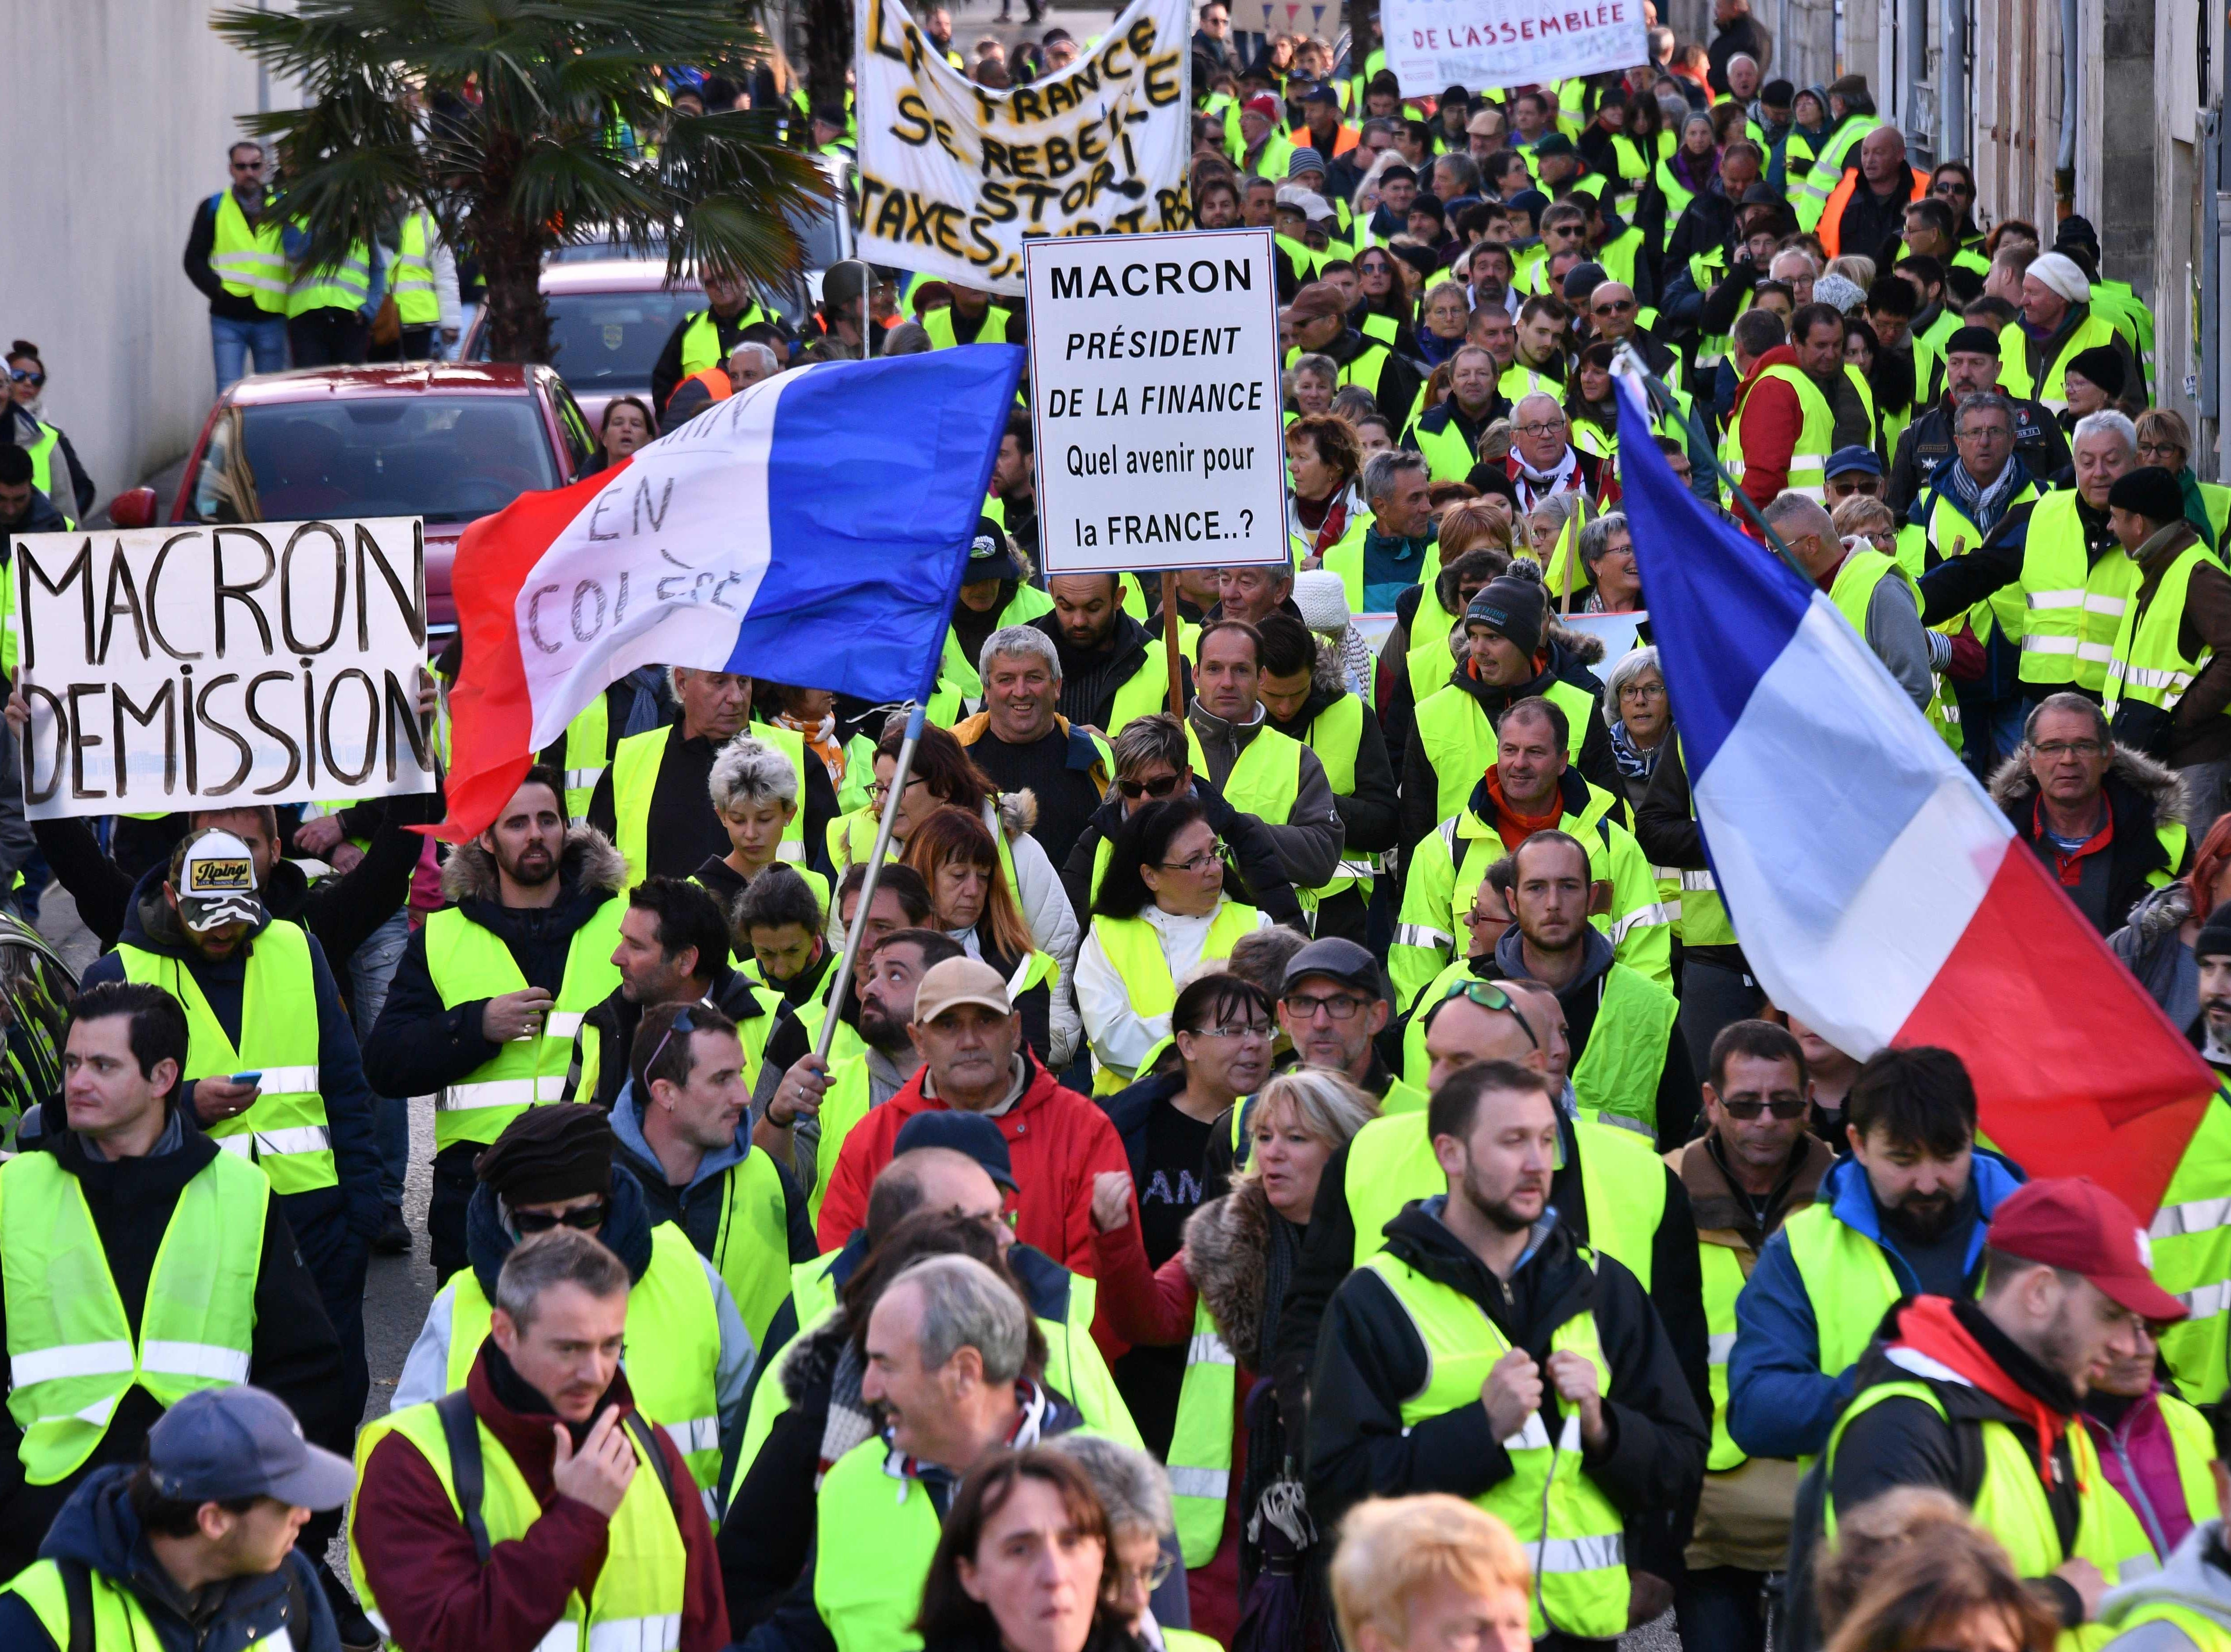 Yellow Vests (Gilets jaunes) shout slogans and wave placards as they participate in a protest rally against high fuel prices in Rochefort, south-western France on Nov. 24, 2018, part of a movement  which has mushroomed into a widespread protest against stagnant spending power under the French President. The demonstrations were sparked by an increase in diesel tax, justified as an anti-pollution levy by the government but have morphed into a broad opposition front to centrist Macron.